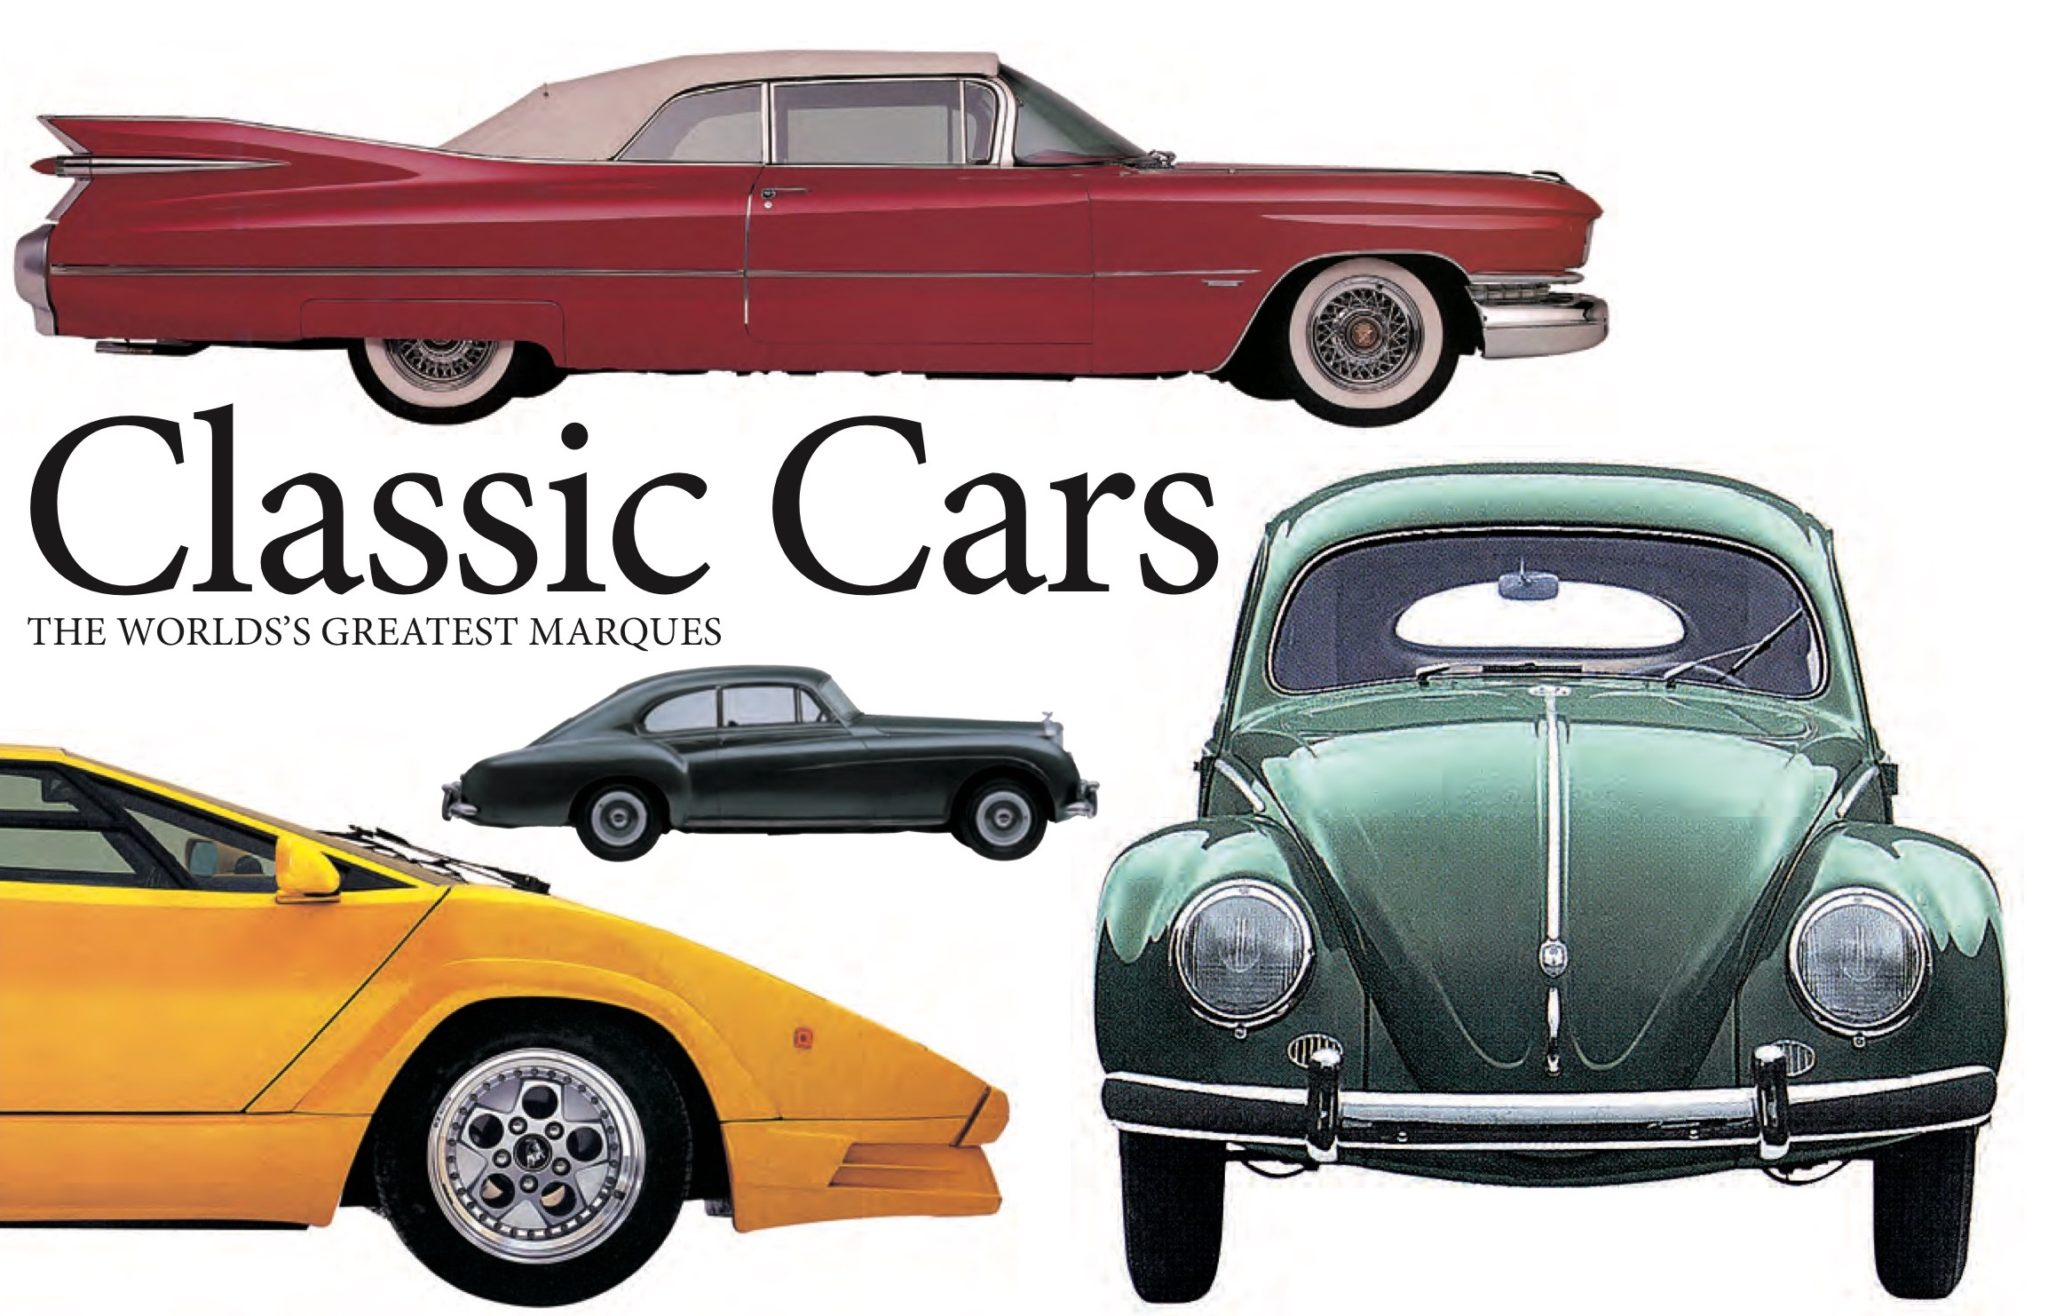 Classic Cars: Landscape Pocket Guides